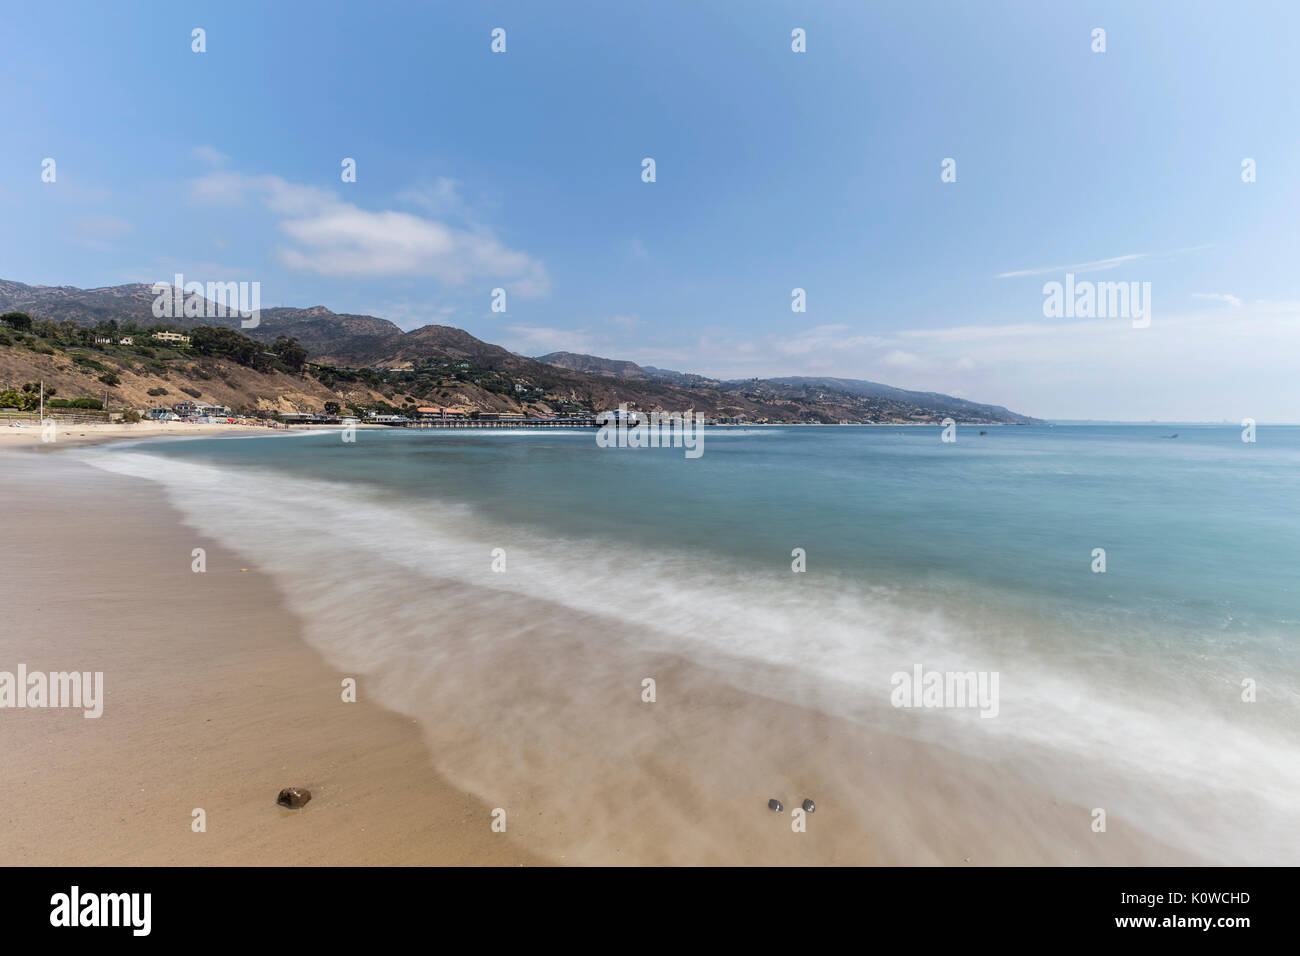 Malibu beach with motion blur surf near Los Angeles in Southern California. - Stock Image